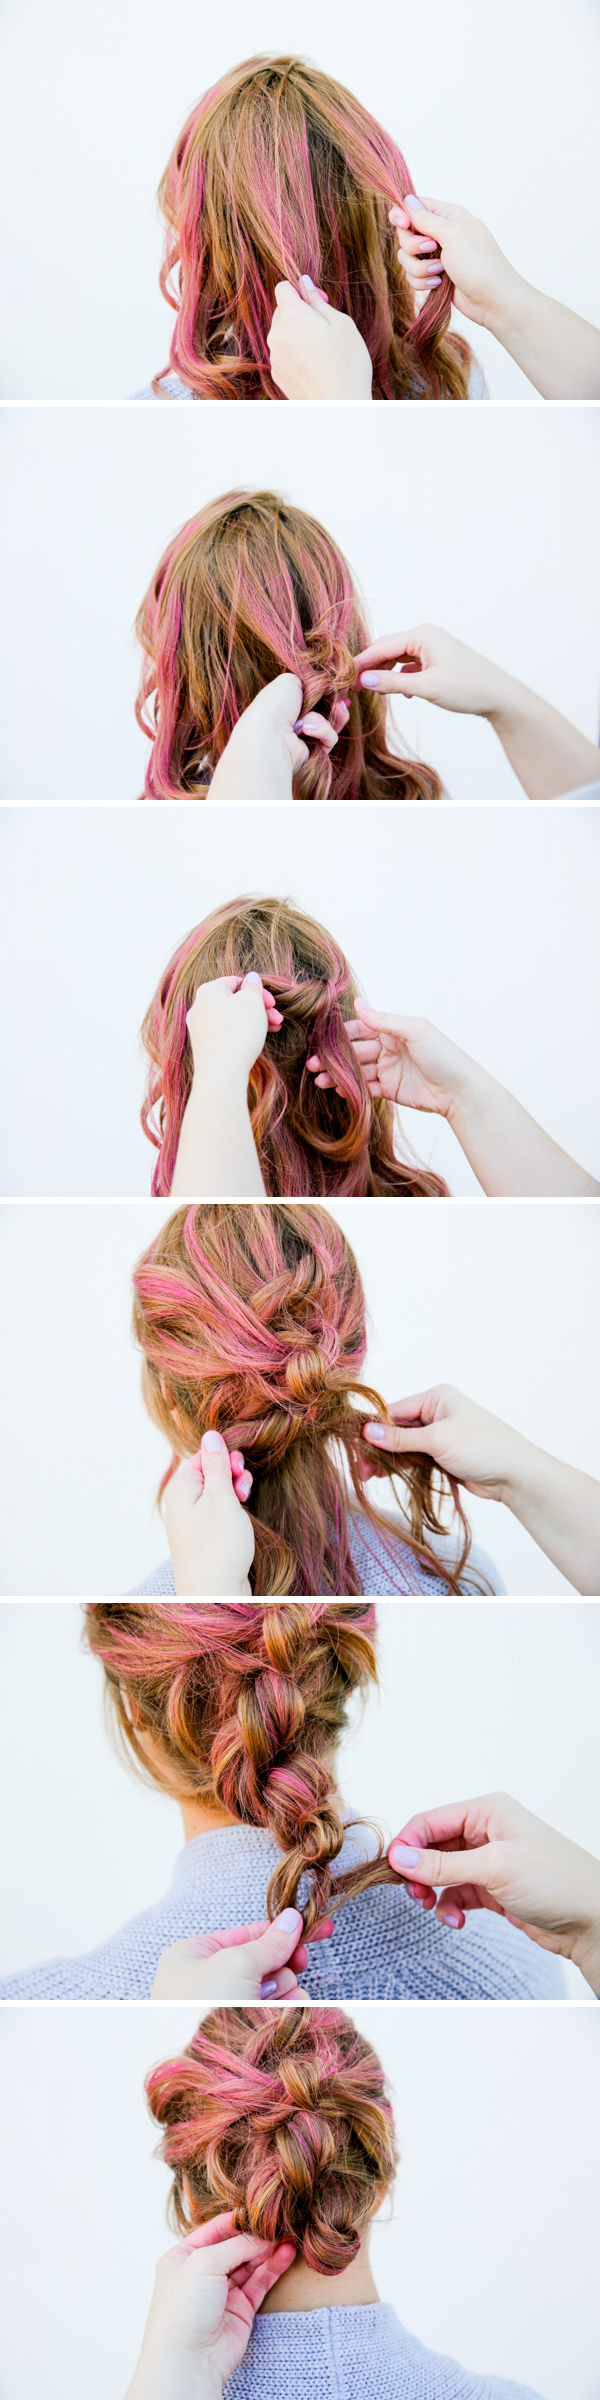 Hair tutorial for an easy knotted up do. If you can tie a knot, you can recreate this look.